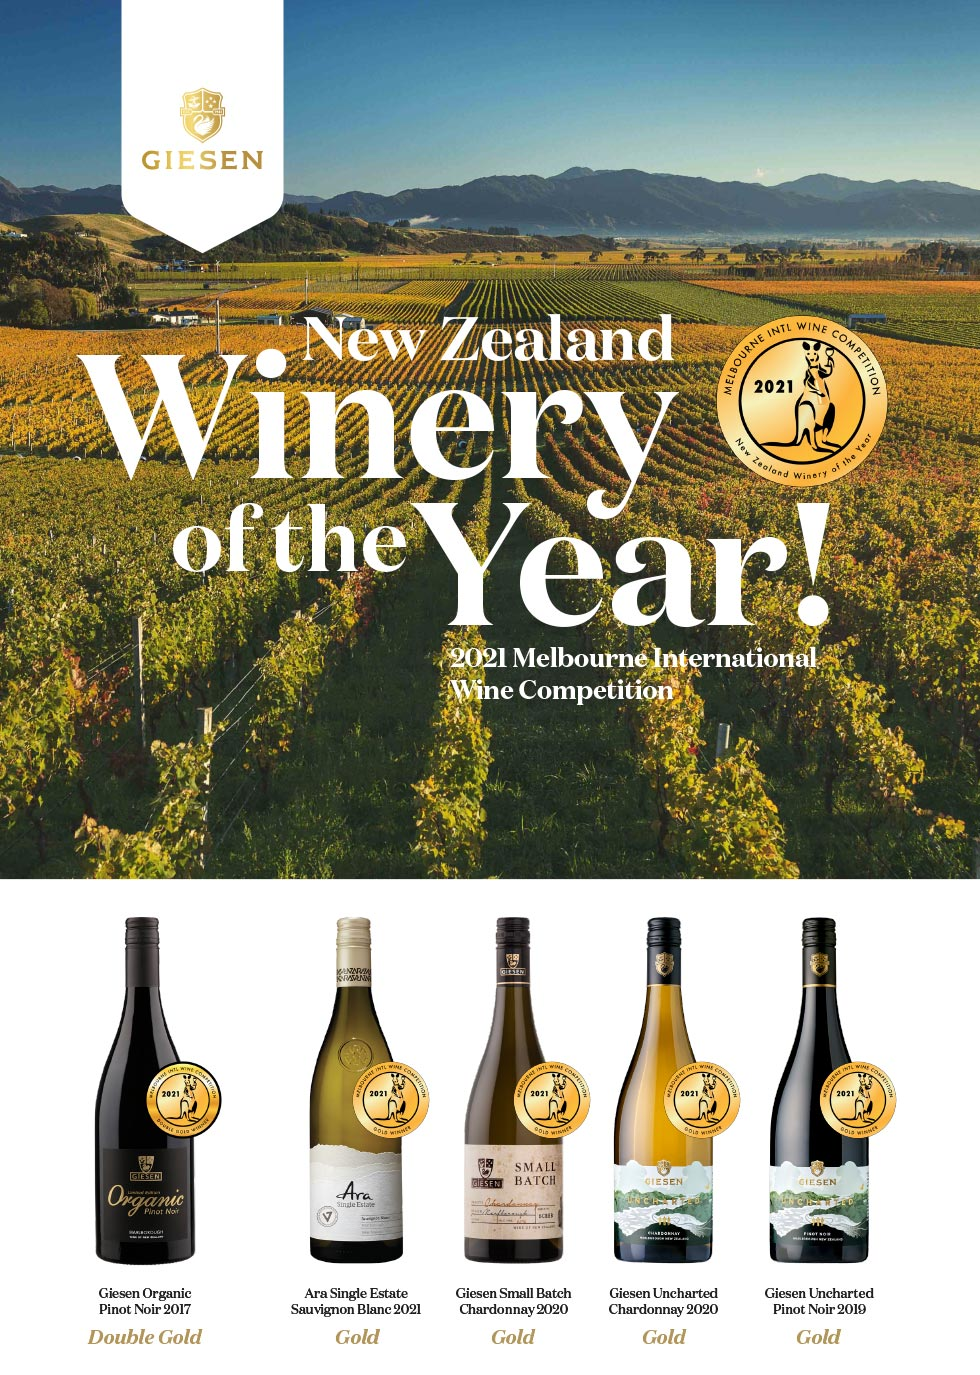 New Zealand Winery of the Year 2021 Awards from Melbourne International Wine Competition